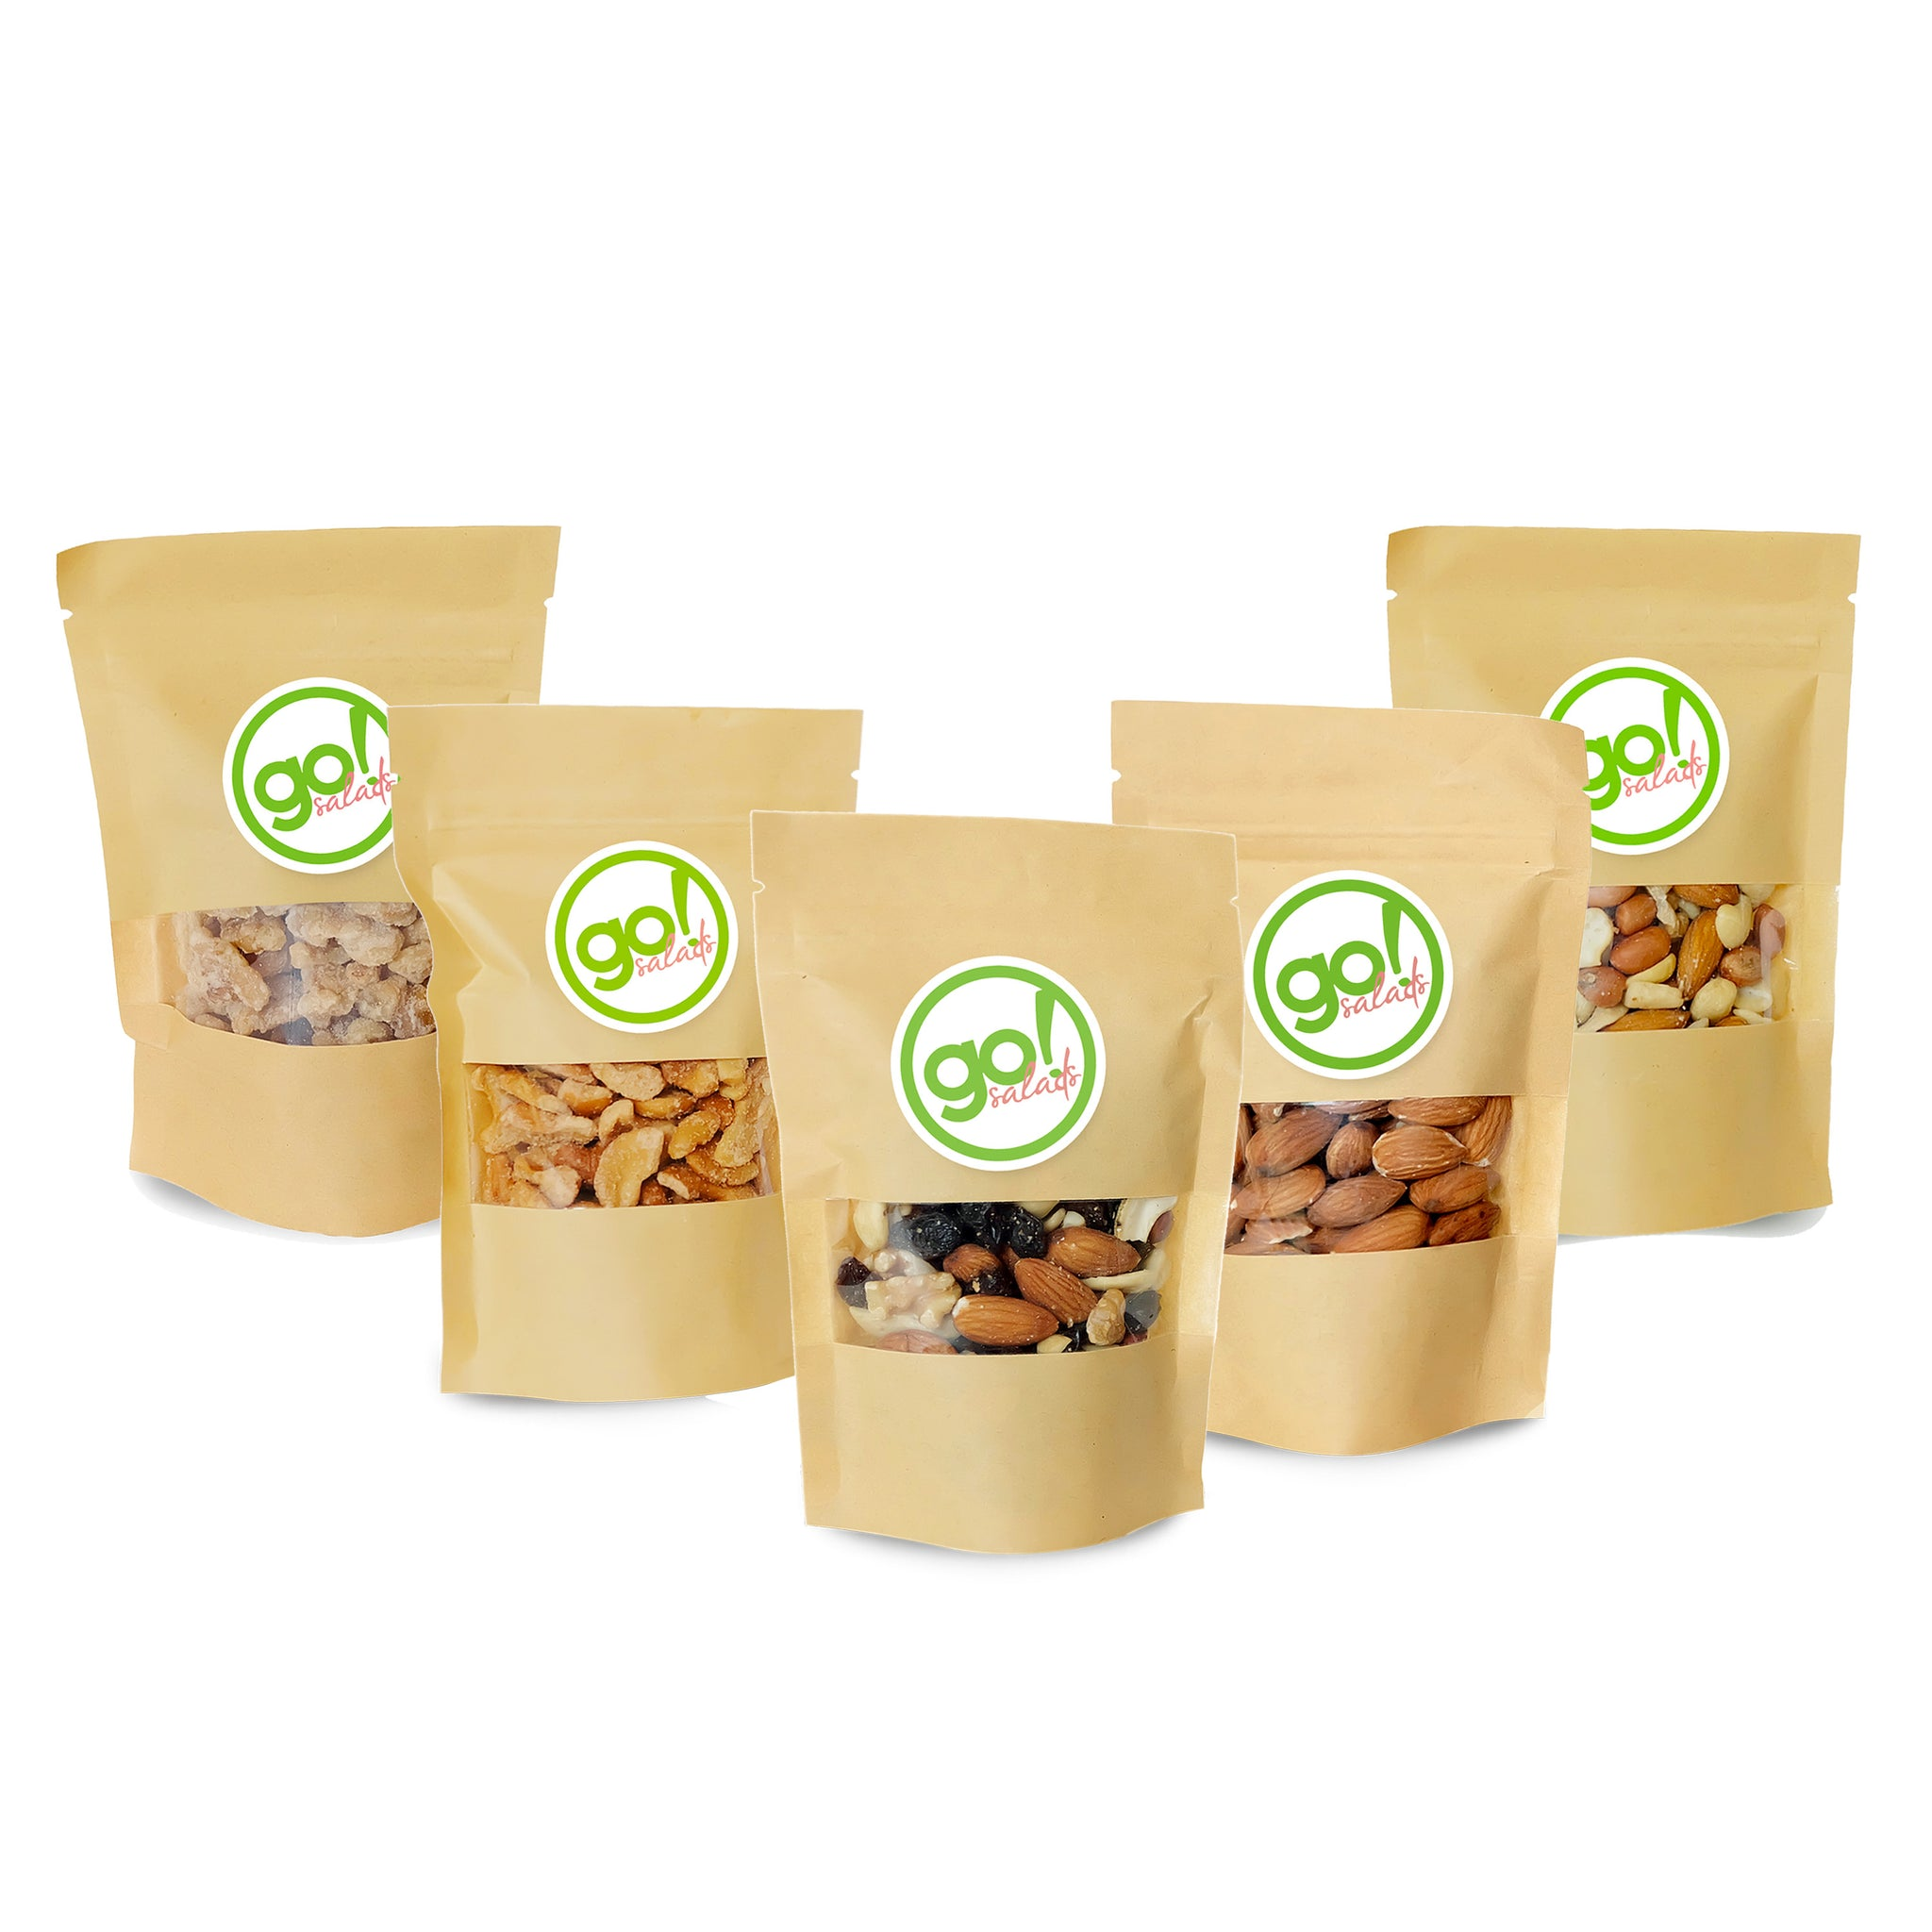 Energy Nuts Bundle - Go! Salads Grocer